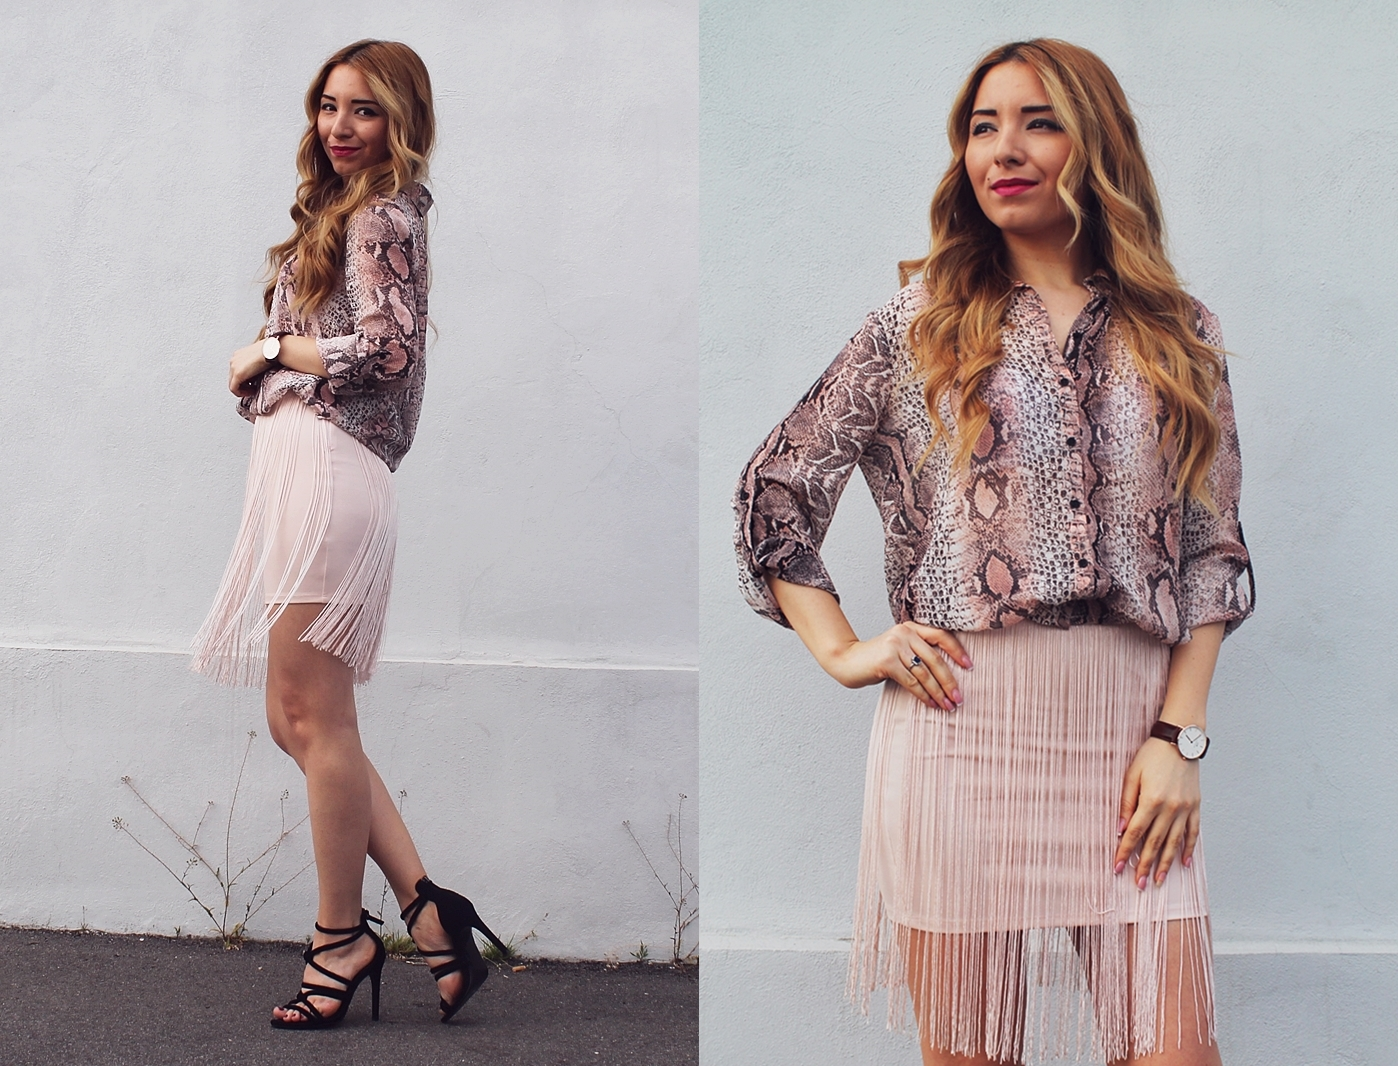 lookbook andreea design, nude outfit, fringe skirt